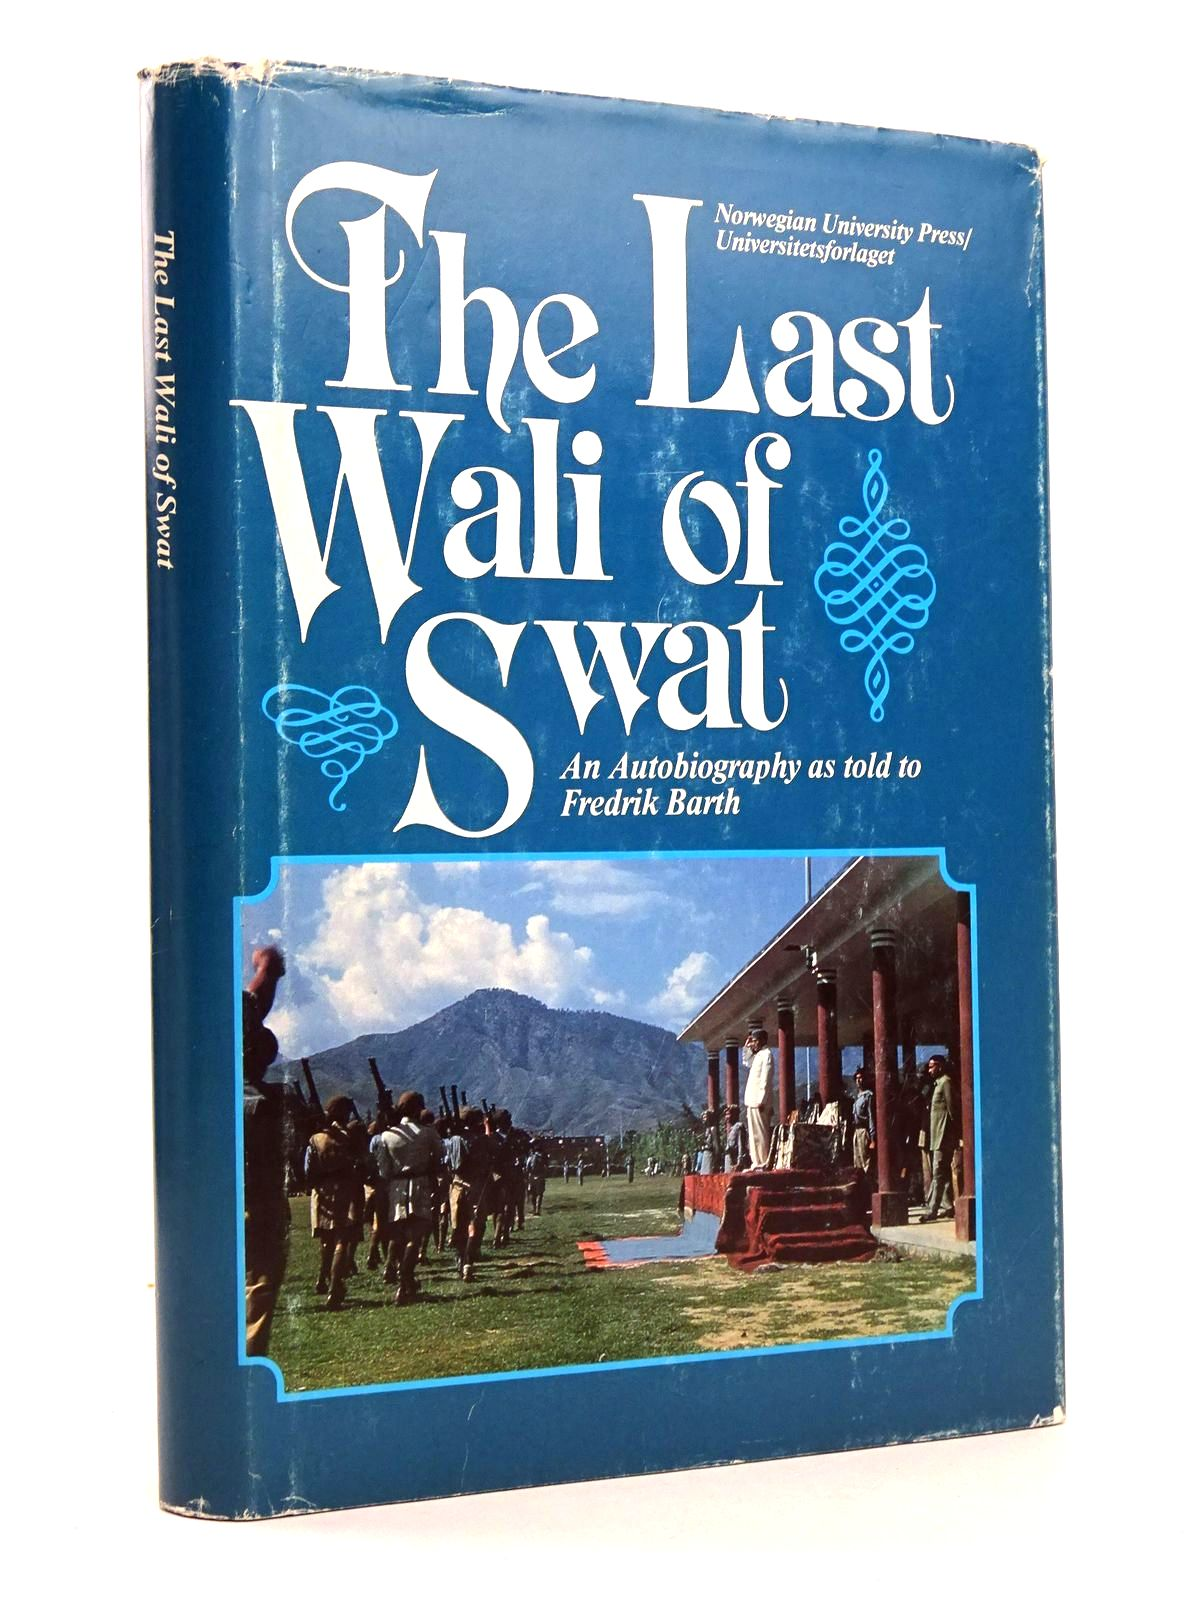 Photo of THE LAST WALI OF SWAT written by Jahanzeb, Miangul Barth, Fredrik published by Norwegian University Press (STOCK CODE: 1818625)  for sale by Stella & Rose's Books